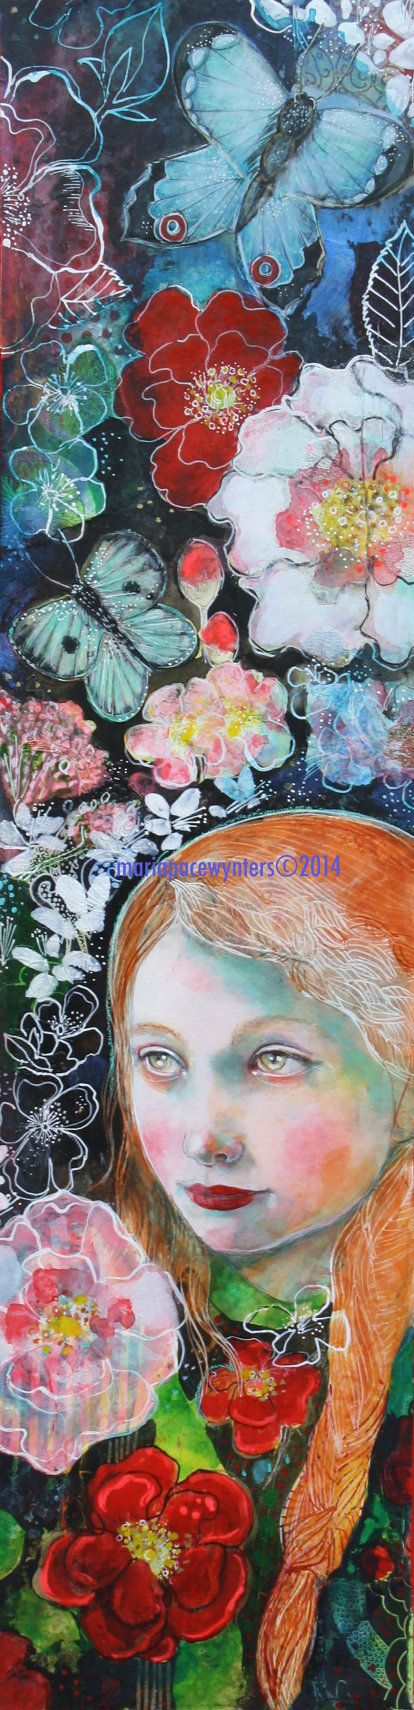 In The Rose Garden- Original mixed media painting by Maria Pace-Wynters: